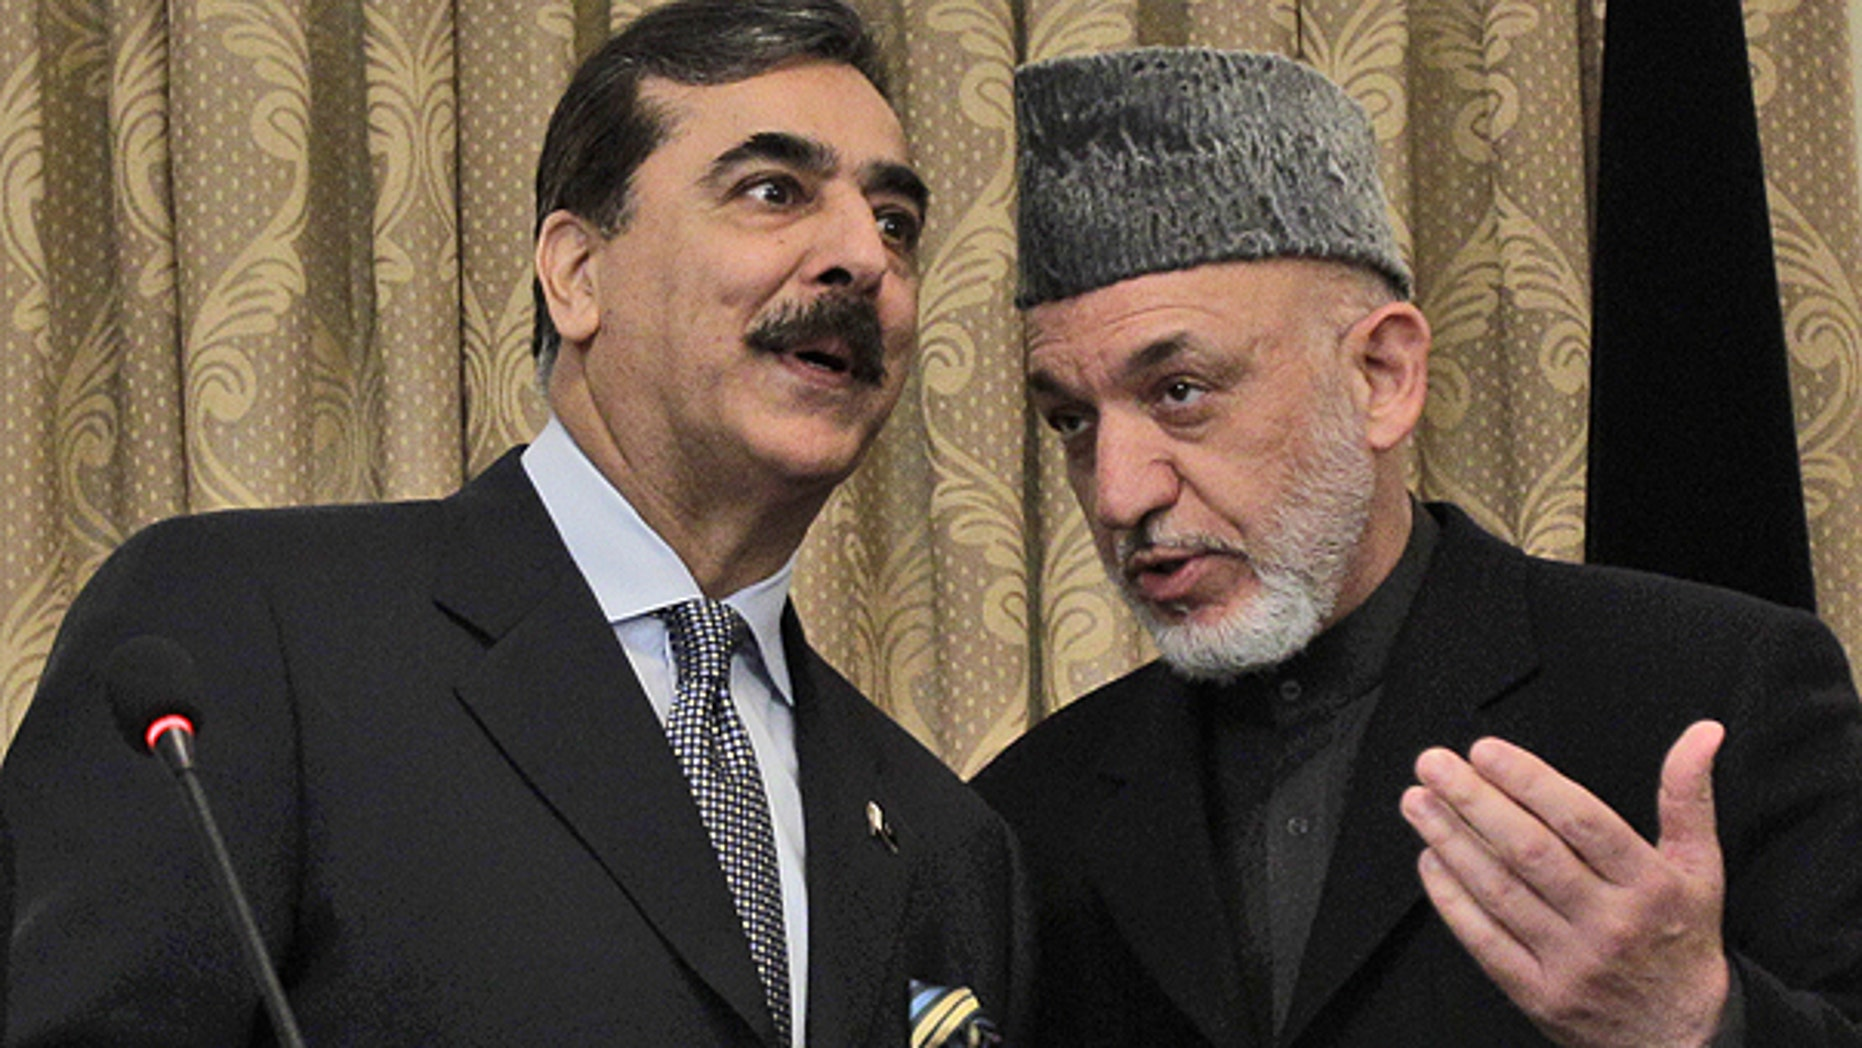 April 16: Pakistan's Prime Minister Raza Gilani, left, speaks with Afghanistan's President Hamid Karzai during a news conference in Kabul, Afghanistan.